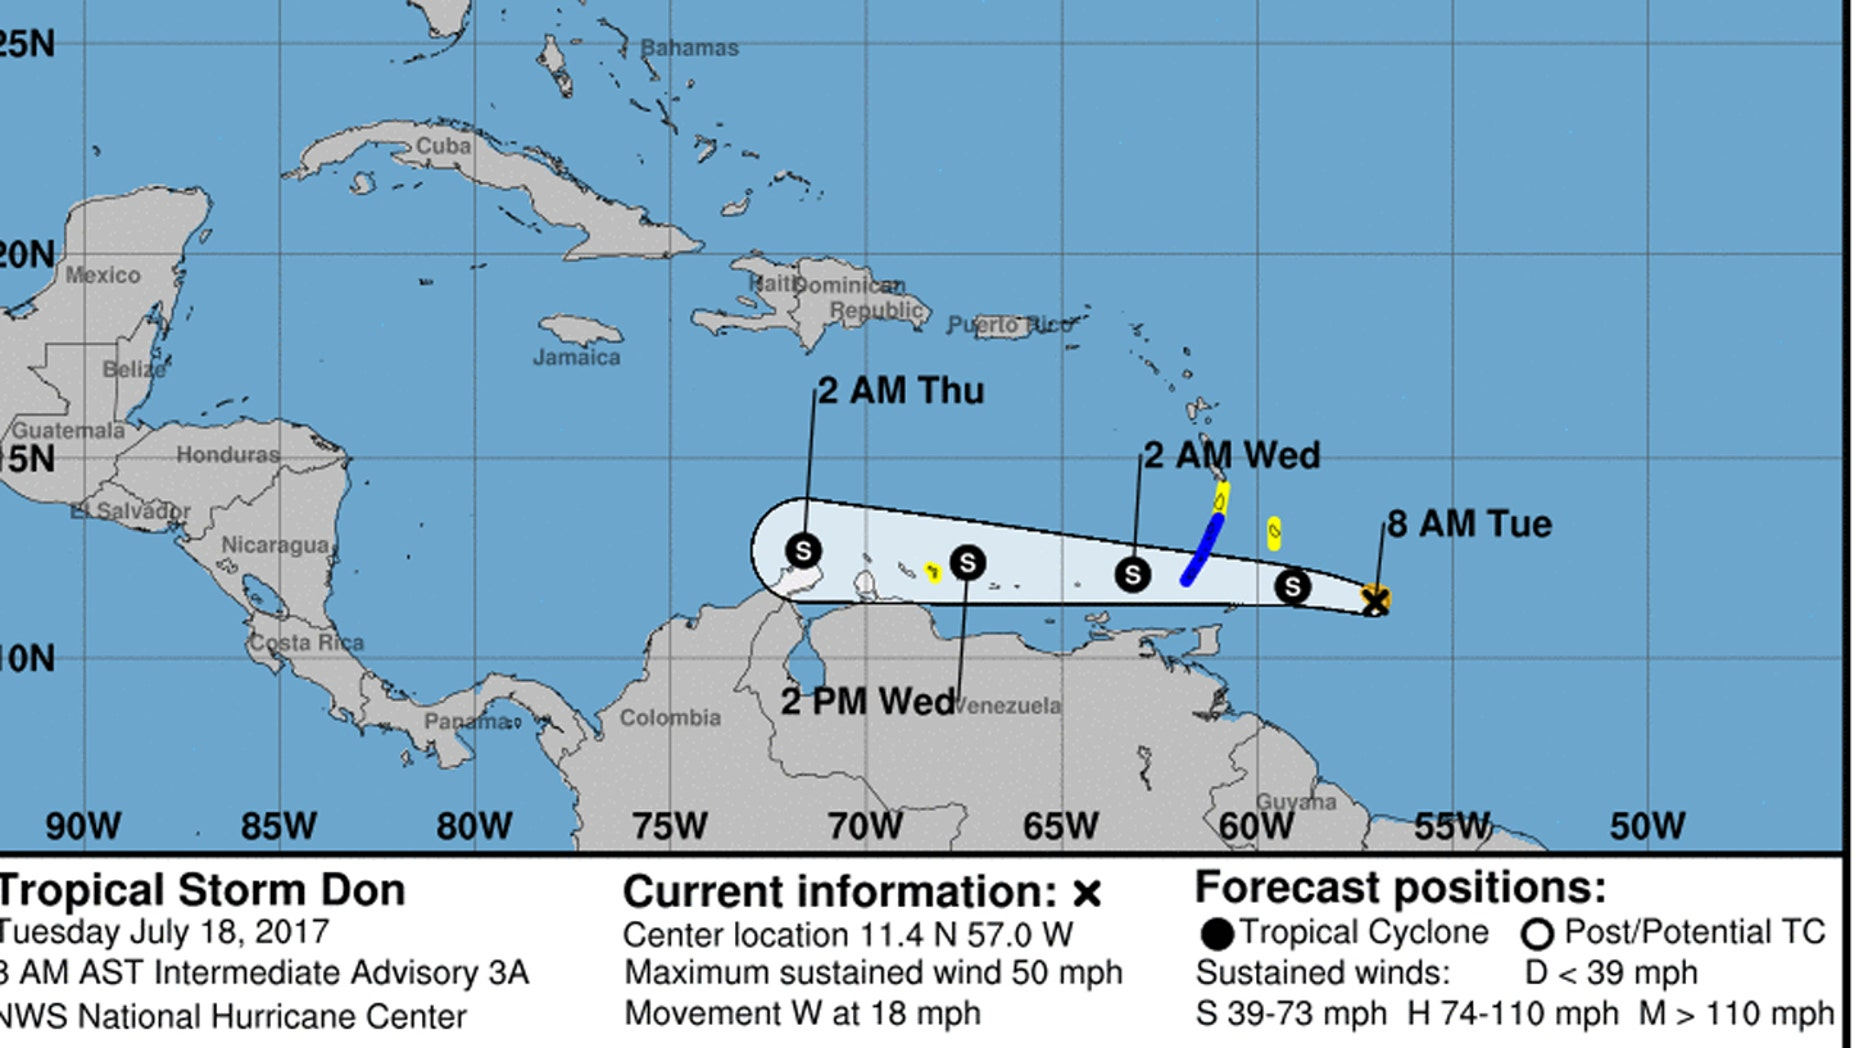 An image from the National Hurricane Center showing the projected path of Tropical Storm Don.